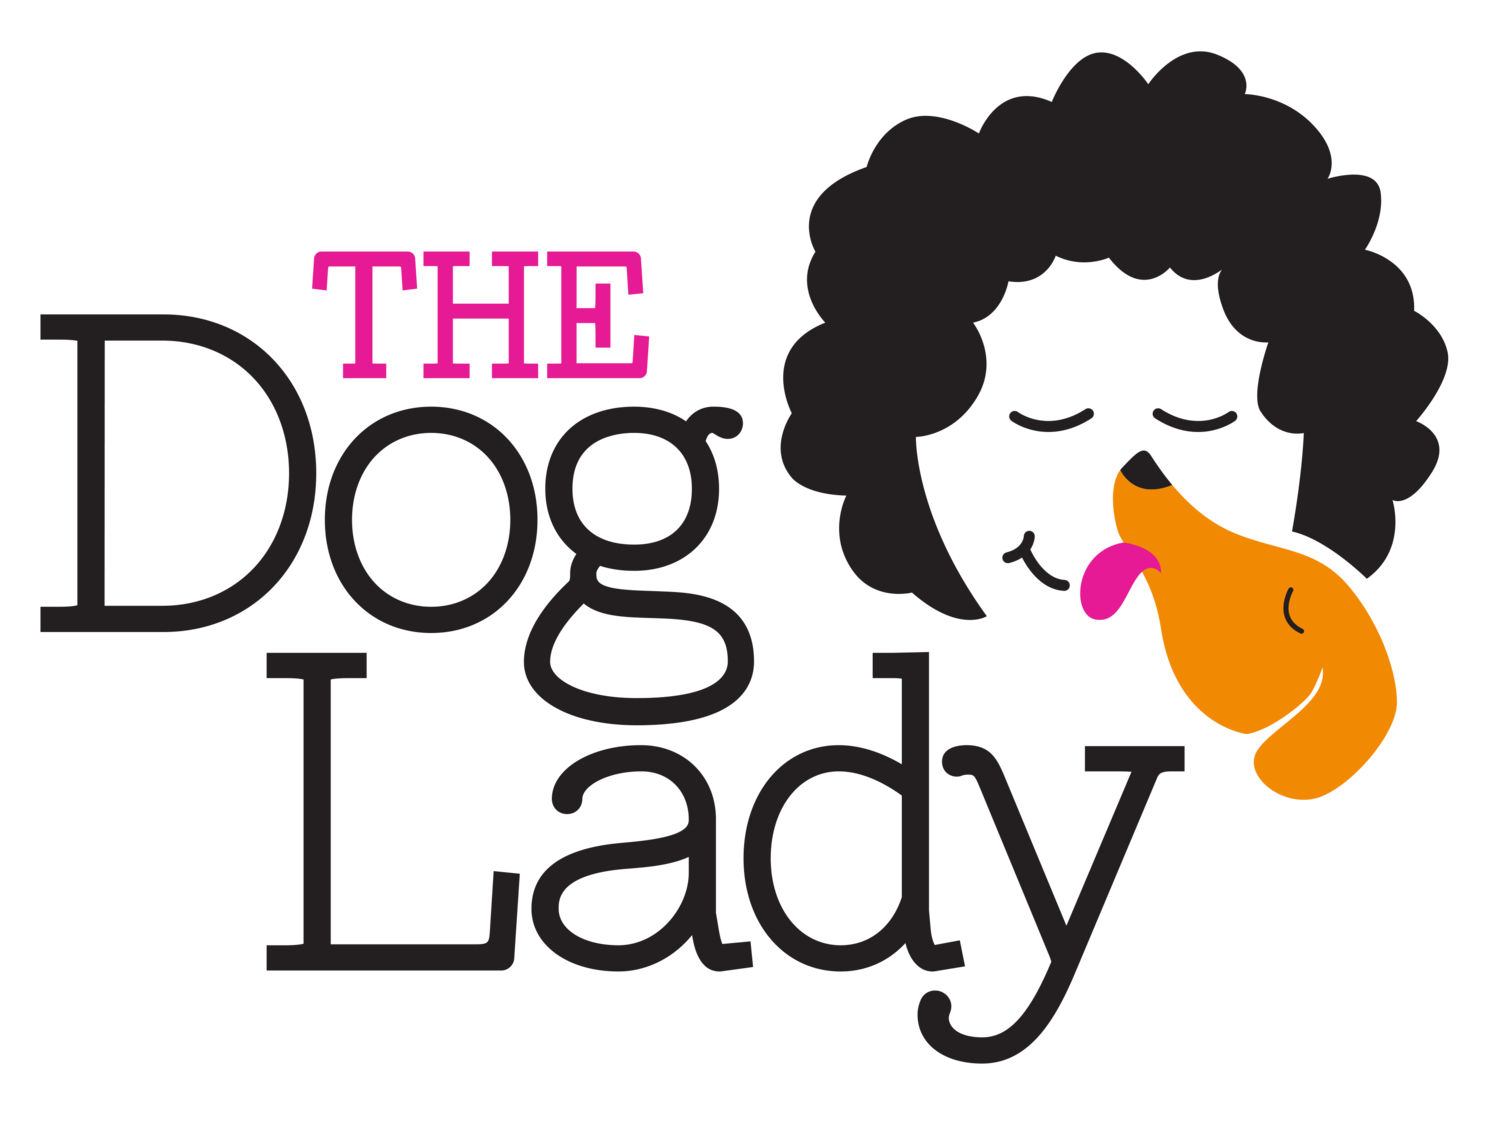 Dog growling clipart vector free Mindful Dog Project — The Dog Lady vector free